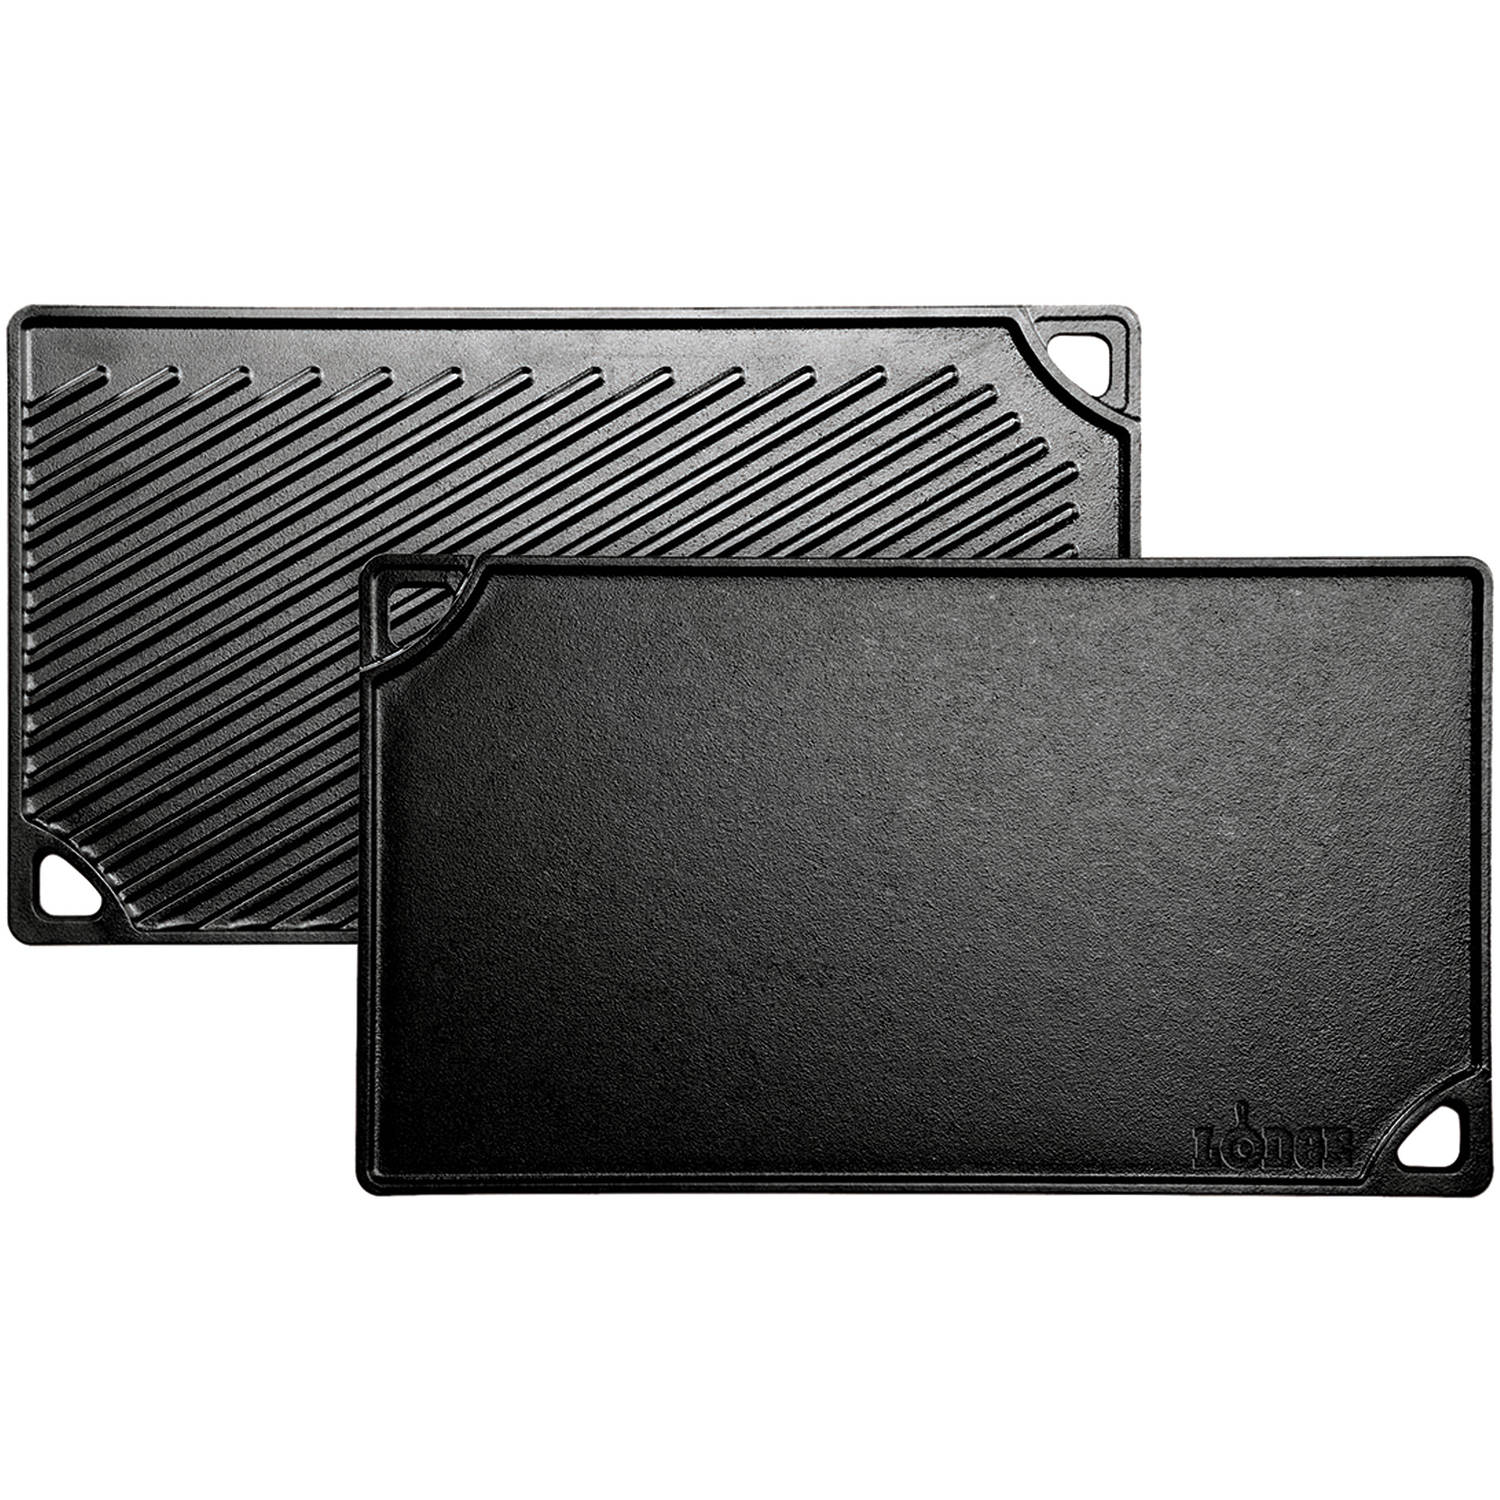 Lodge Logic Double Play Cast Iron Reversible Griddle